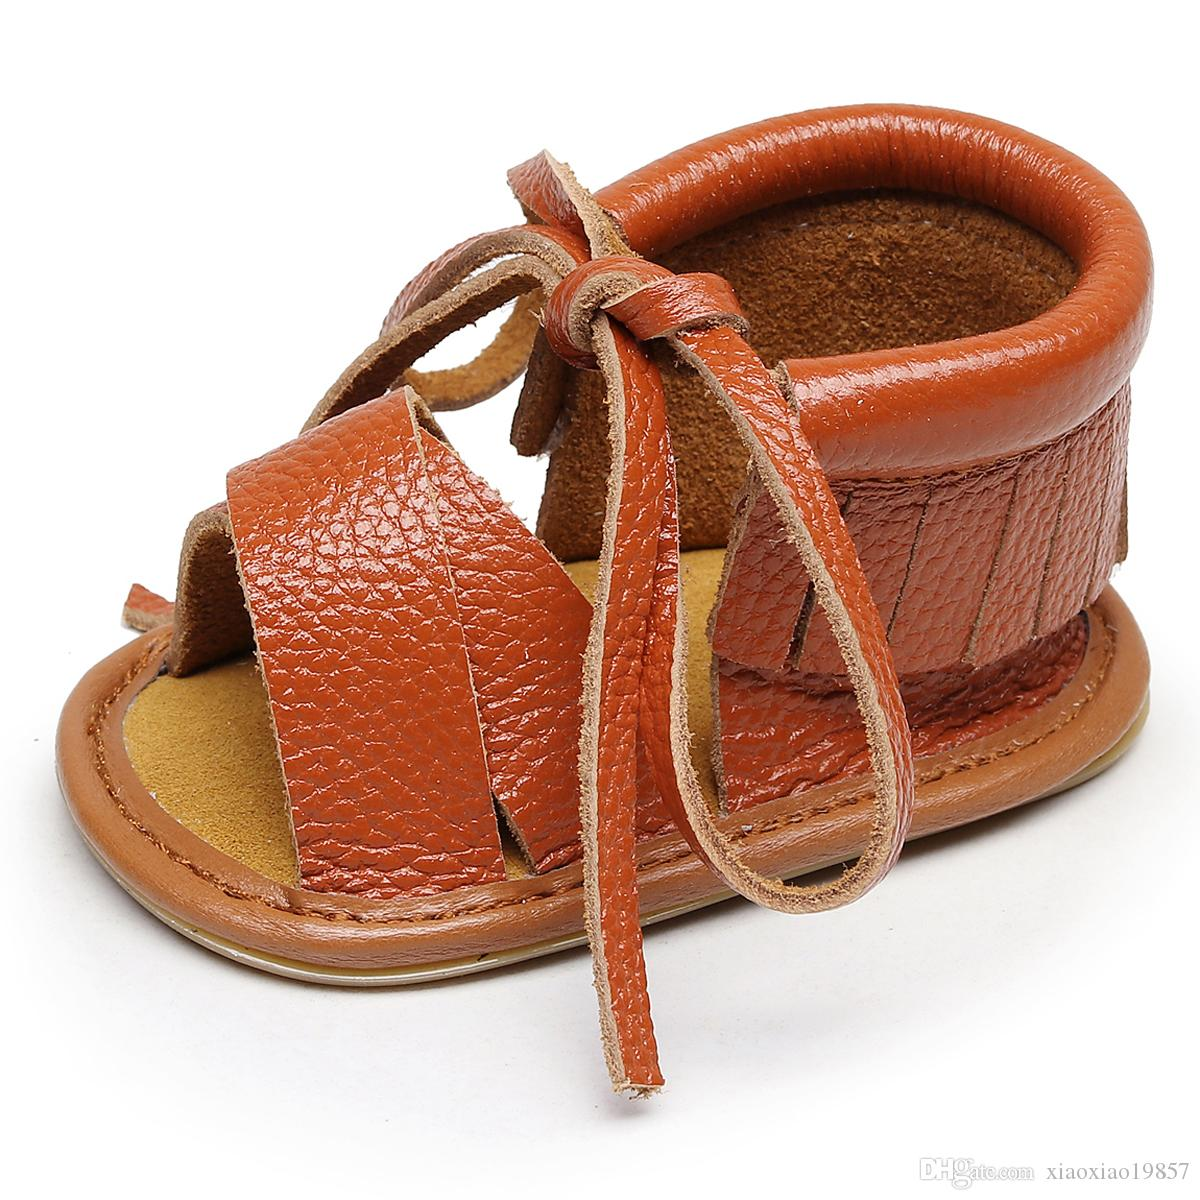 511f1af1c25517 New Style Genuine Leather Hollow Lace Up Baby Sandals Hard Sole Kids Shoes  Fashion Fringe Summer Baby Sandals for Girls And Boys Baby Sandals Girls ...